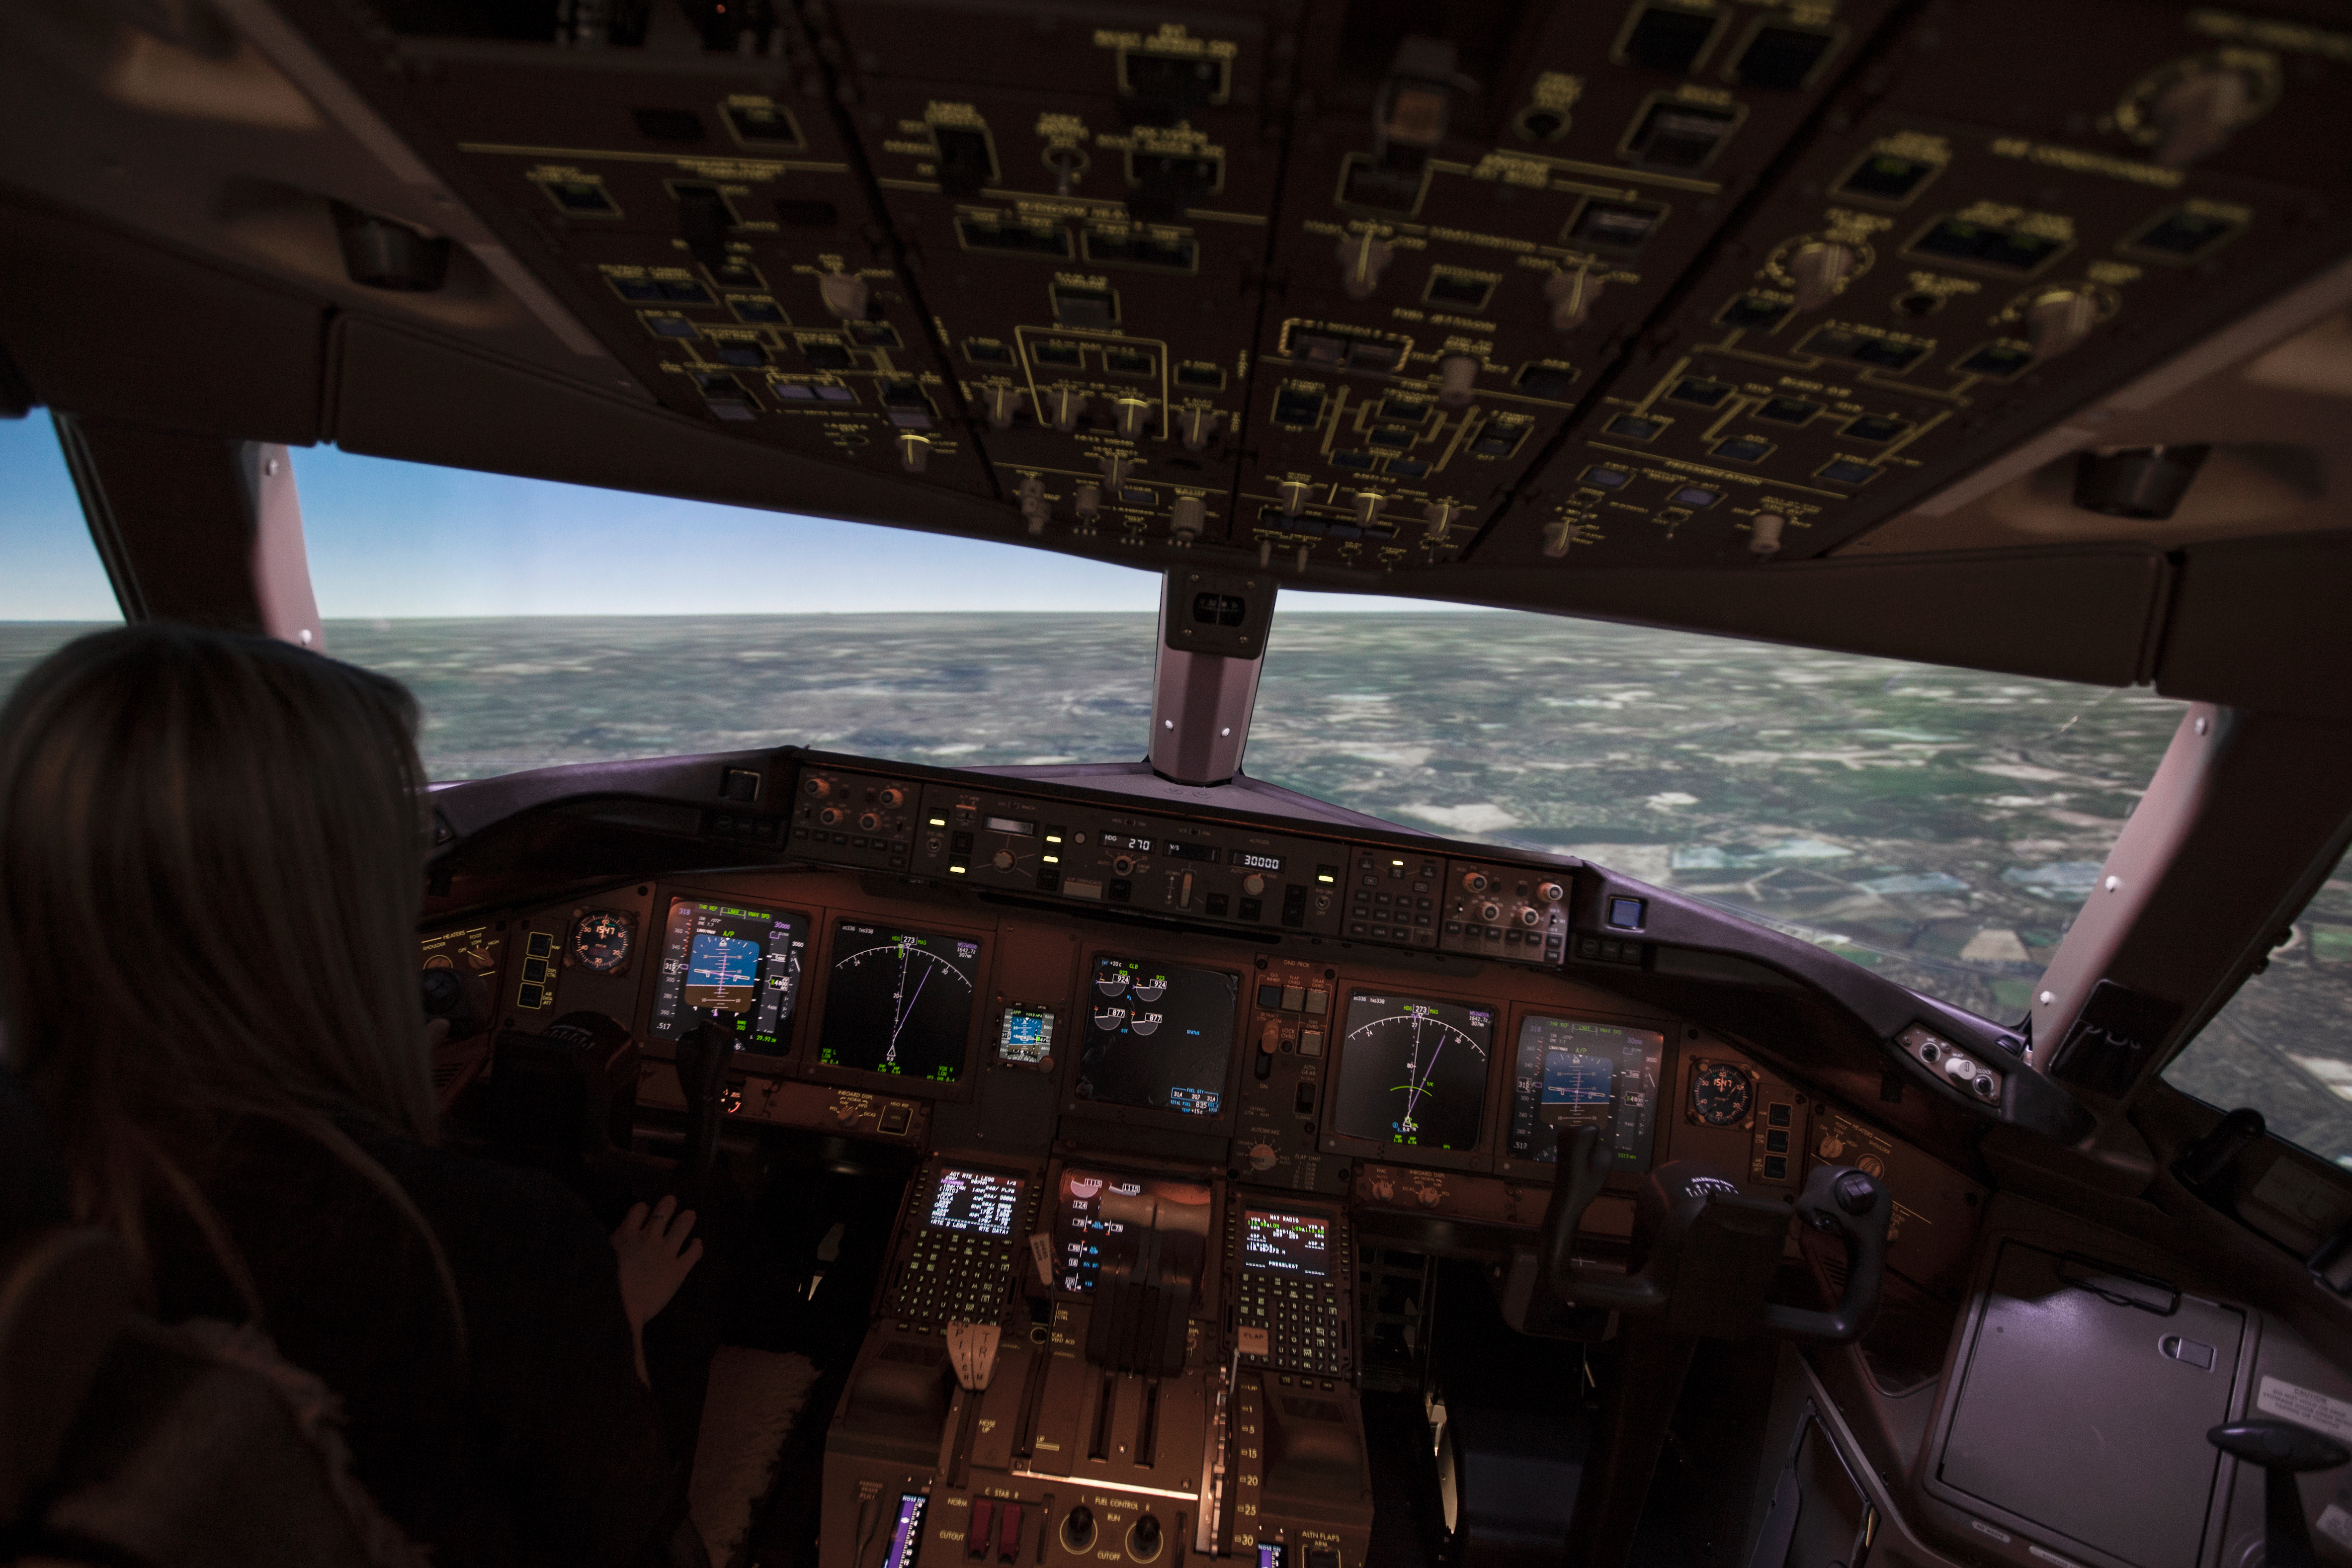 L-3 Link Simulation & Training UK